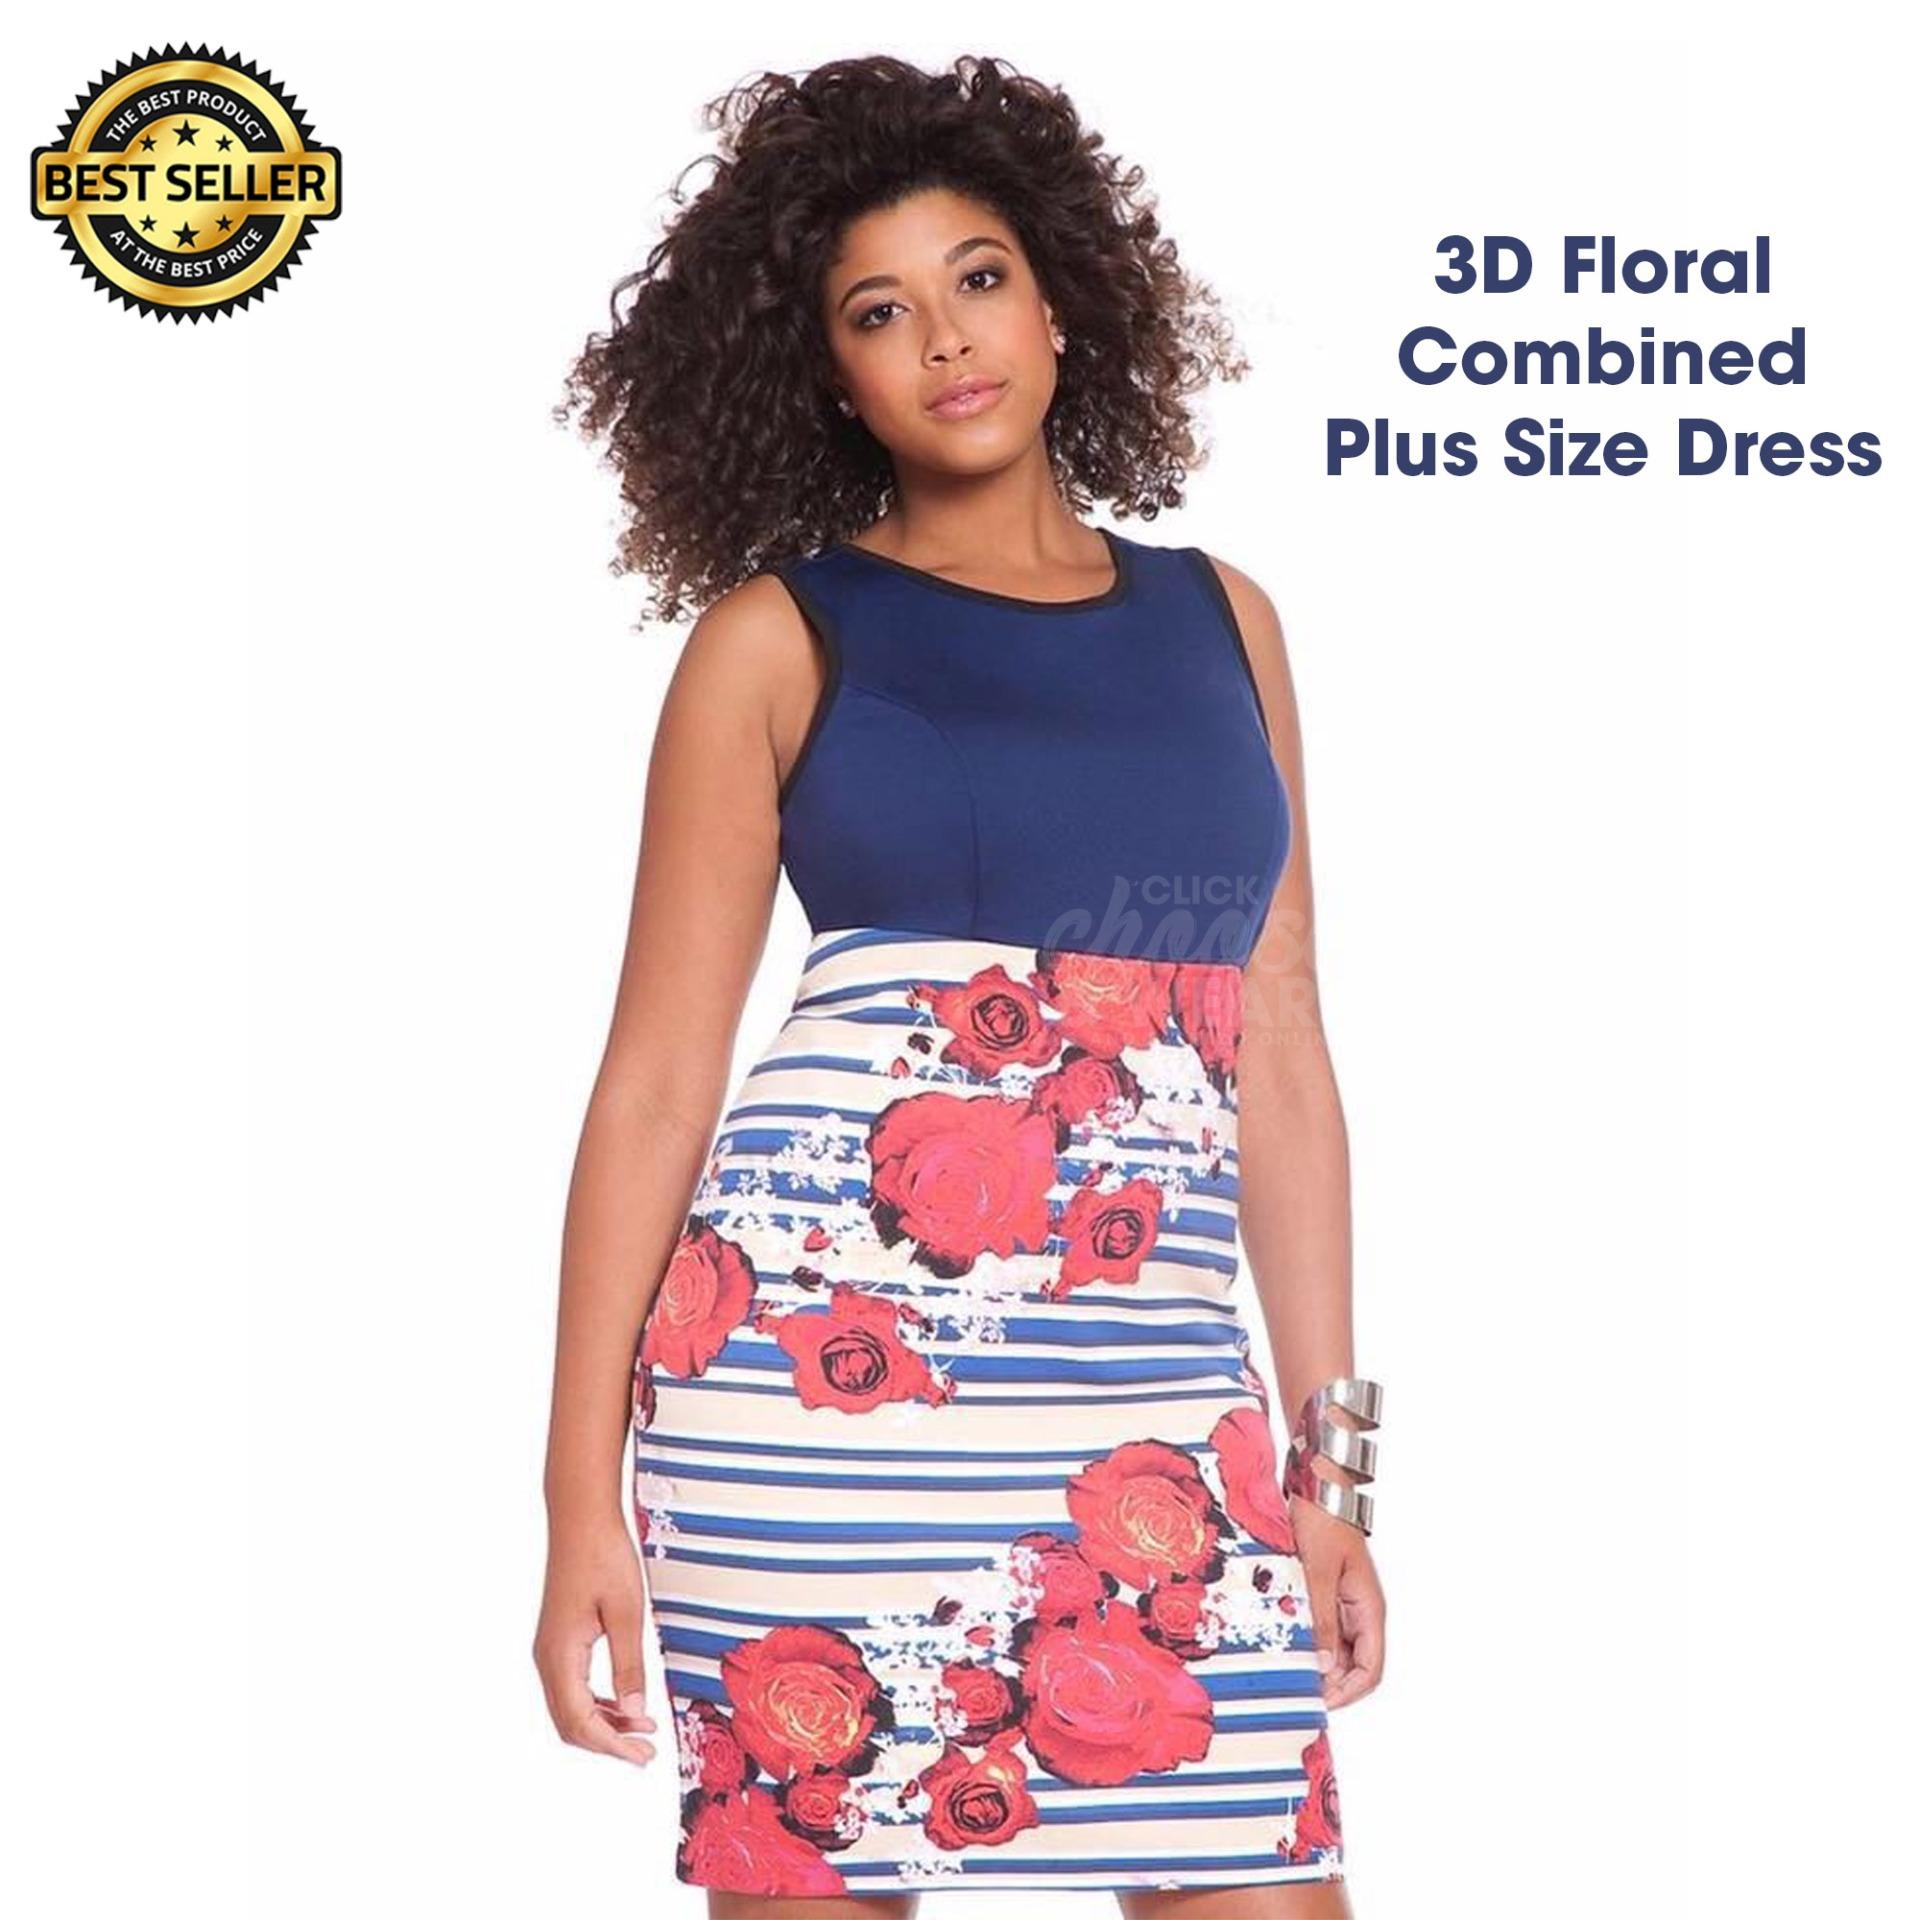 Womens Plus Size For Sale Plus Size Clothing Online Brands Prices